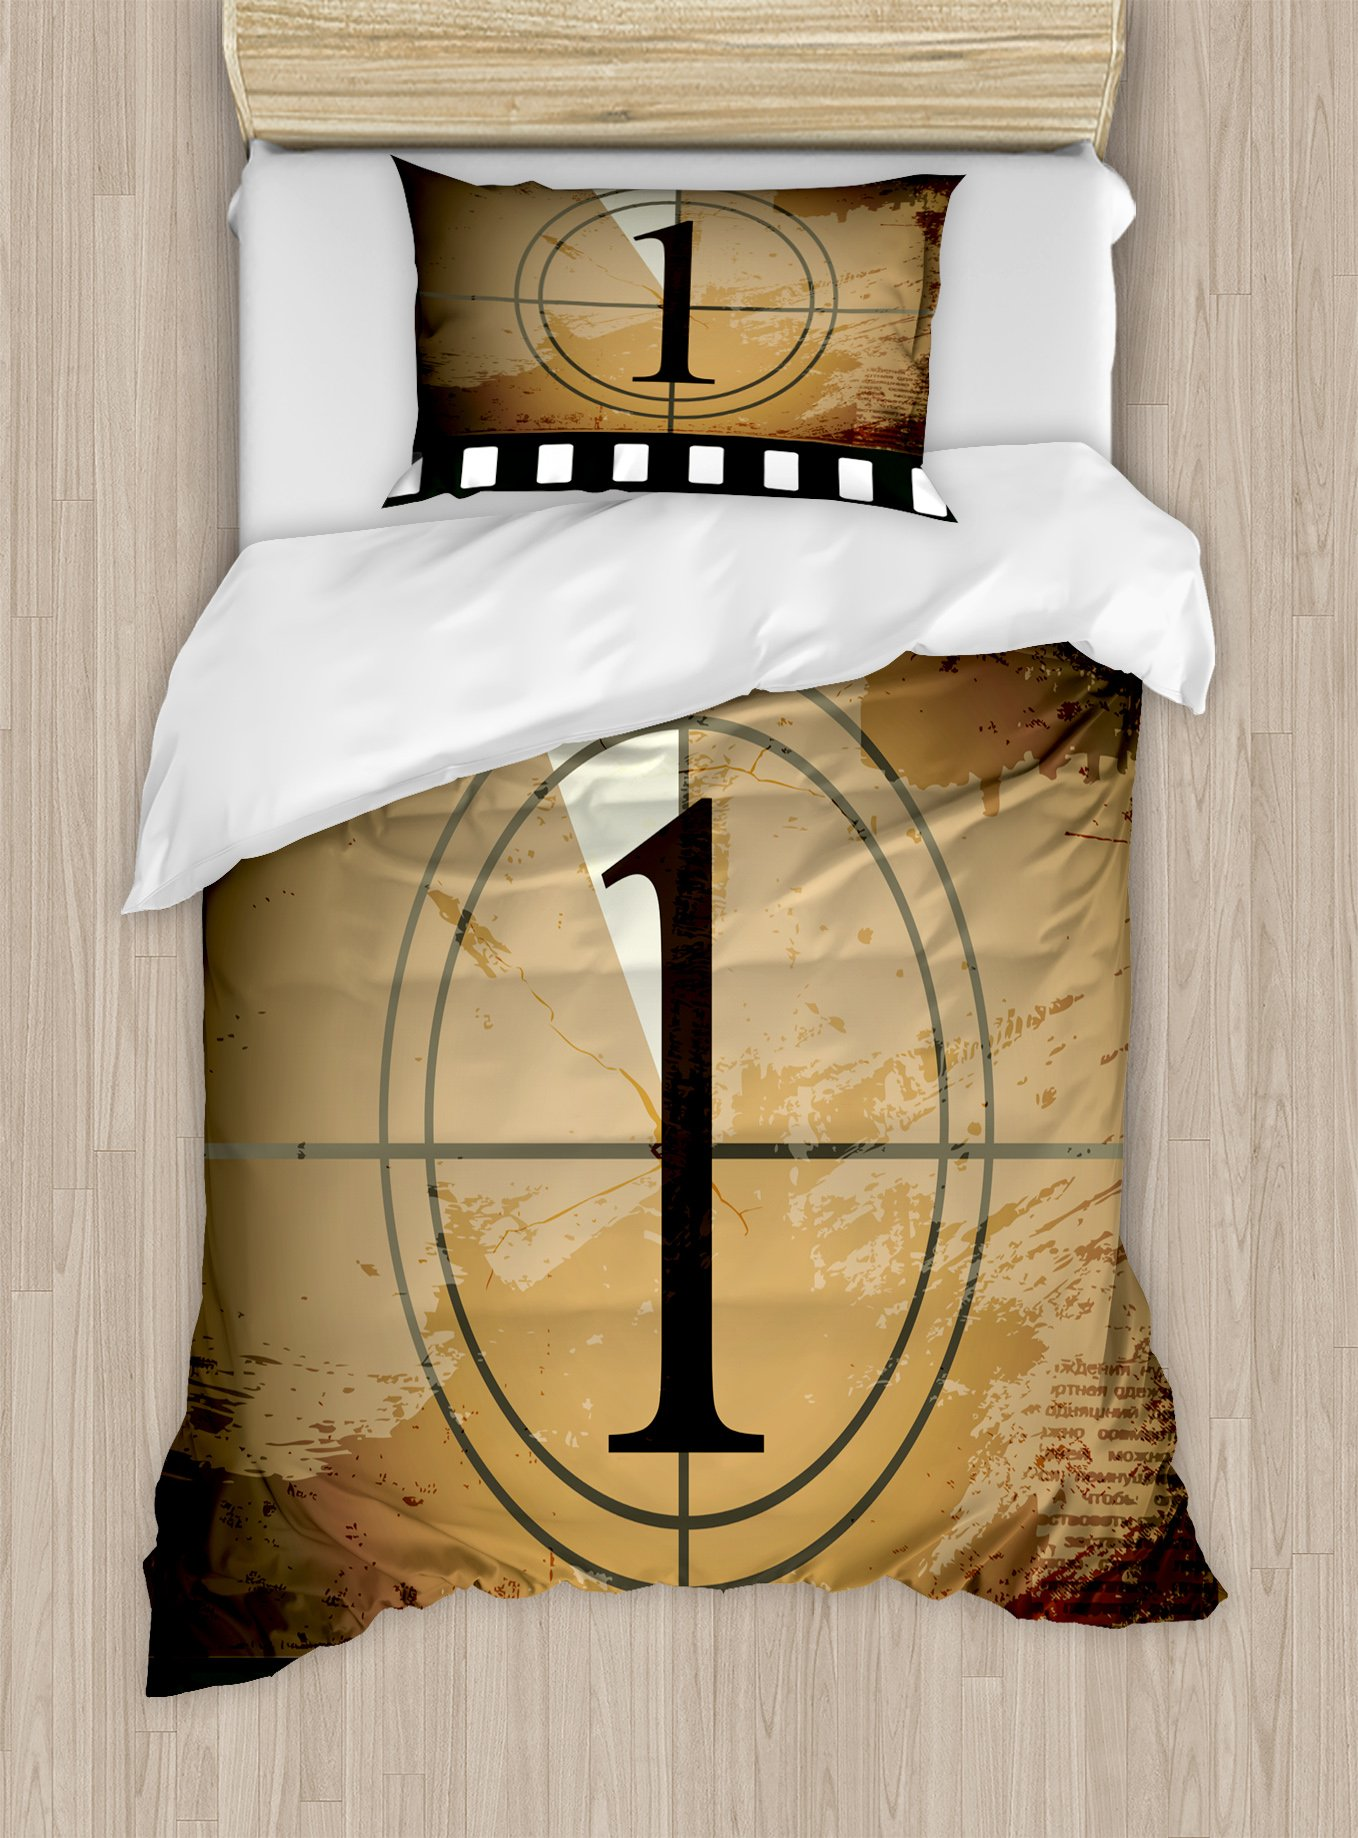 Ambesonne Movie Theater Twin Size Duvet Cover Set, Grunge Countdown Frame with The Number 1 in a Circle Film Strip, Decorative 2 Piece Bedding Set with 1 Pillow Sham, Pale Brown Black White